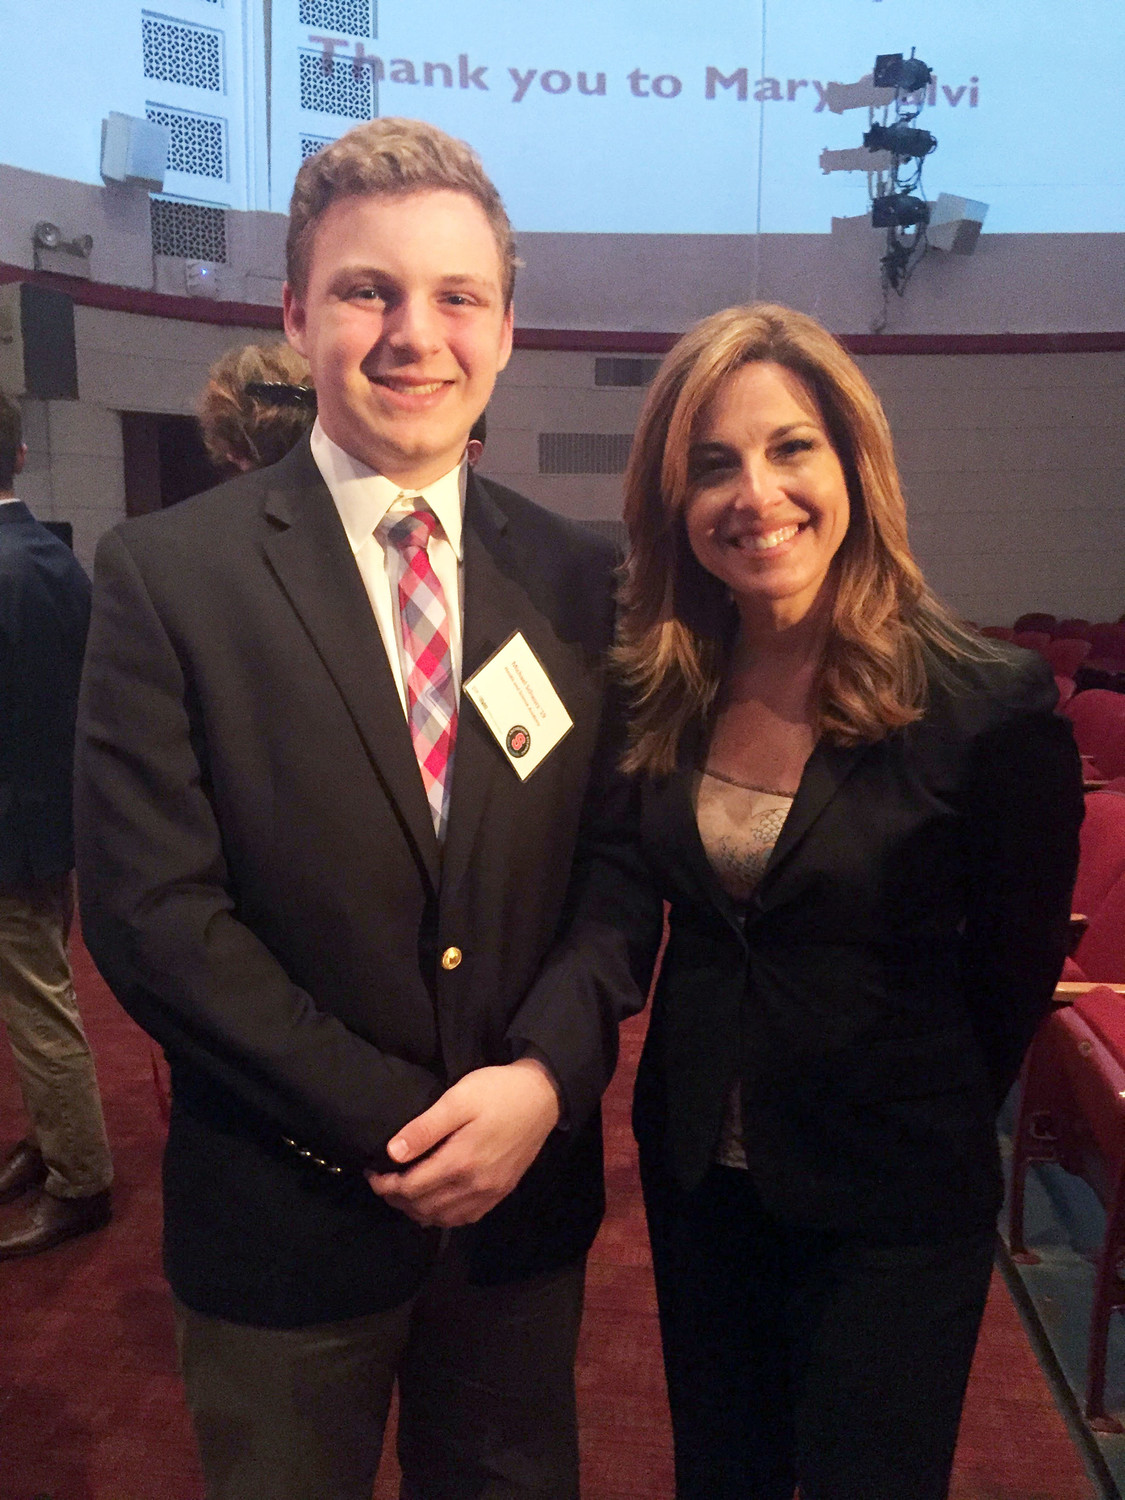 Stepinac Honors Academy student Michael Schwarz greets broadcast journalist Mary Calvi, who served as moderator of the Clean Water Solution Symposium at Archbishop Stepinac High School in White Plains May 30.